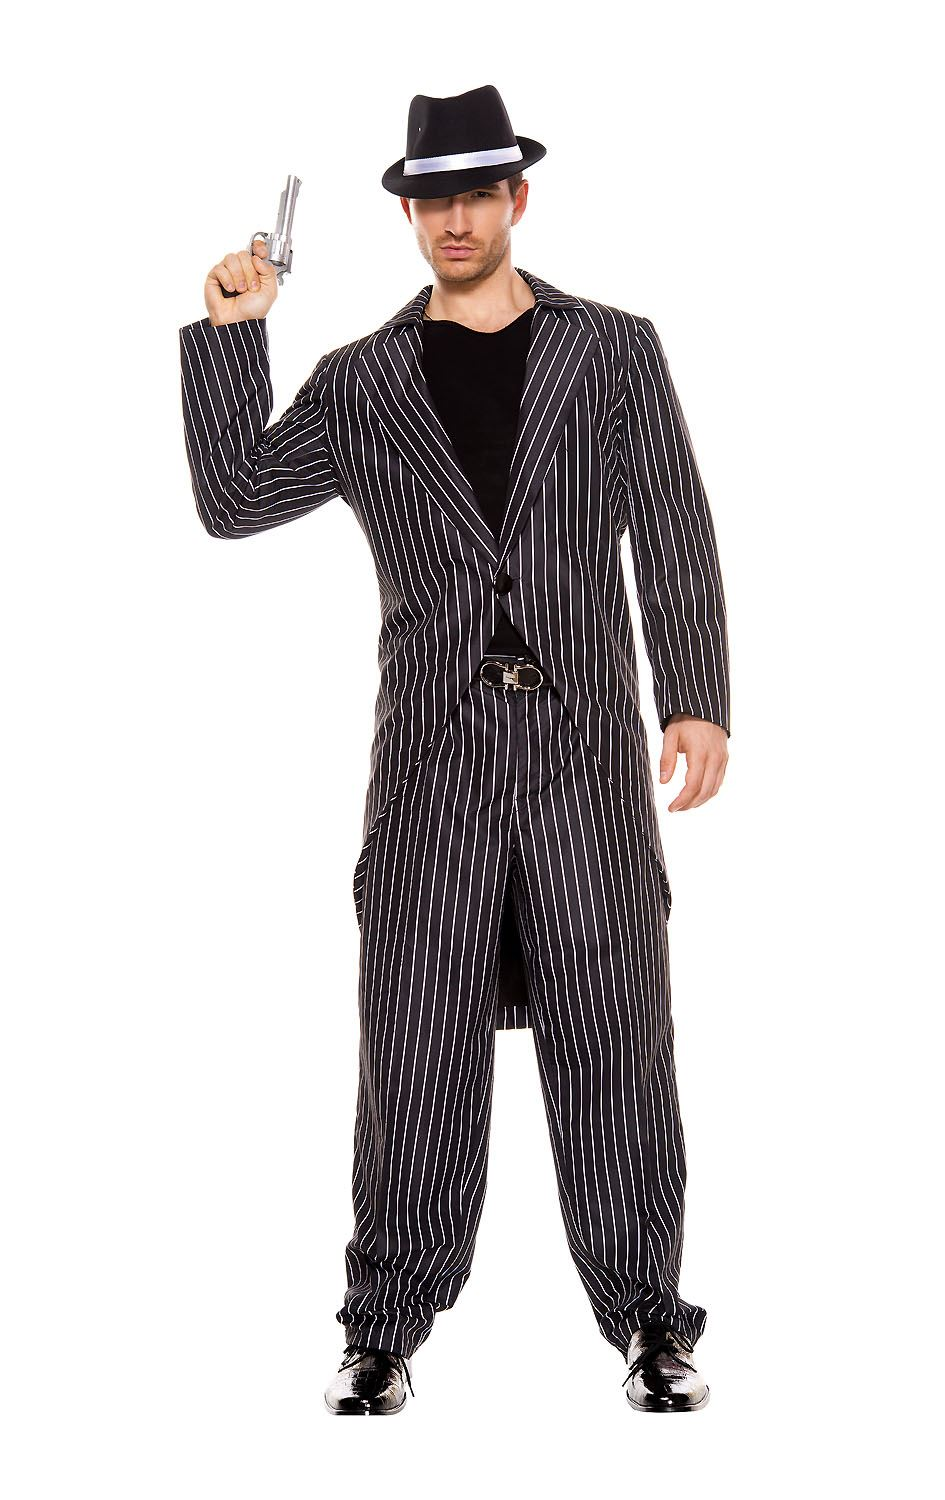 Adult Mafia Men Gangster Costume ...  sc 1 st  The Costume Land & Adult Mafia Men Gangster Costume | $34.99 | The Costume Land